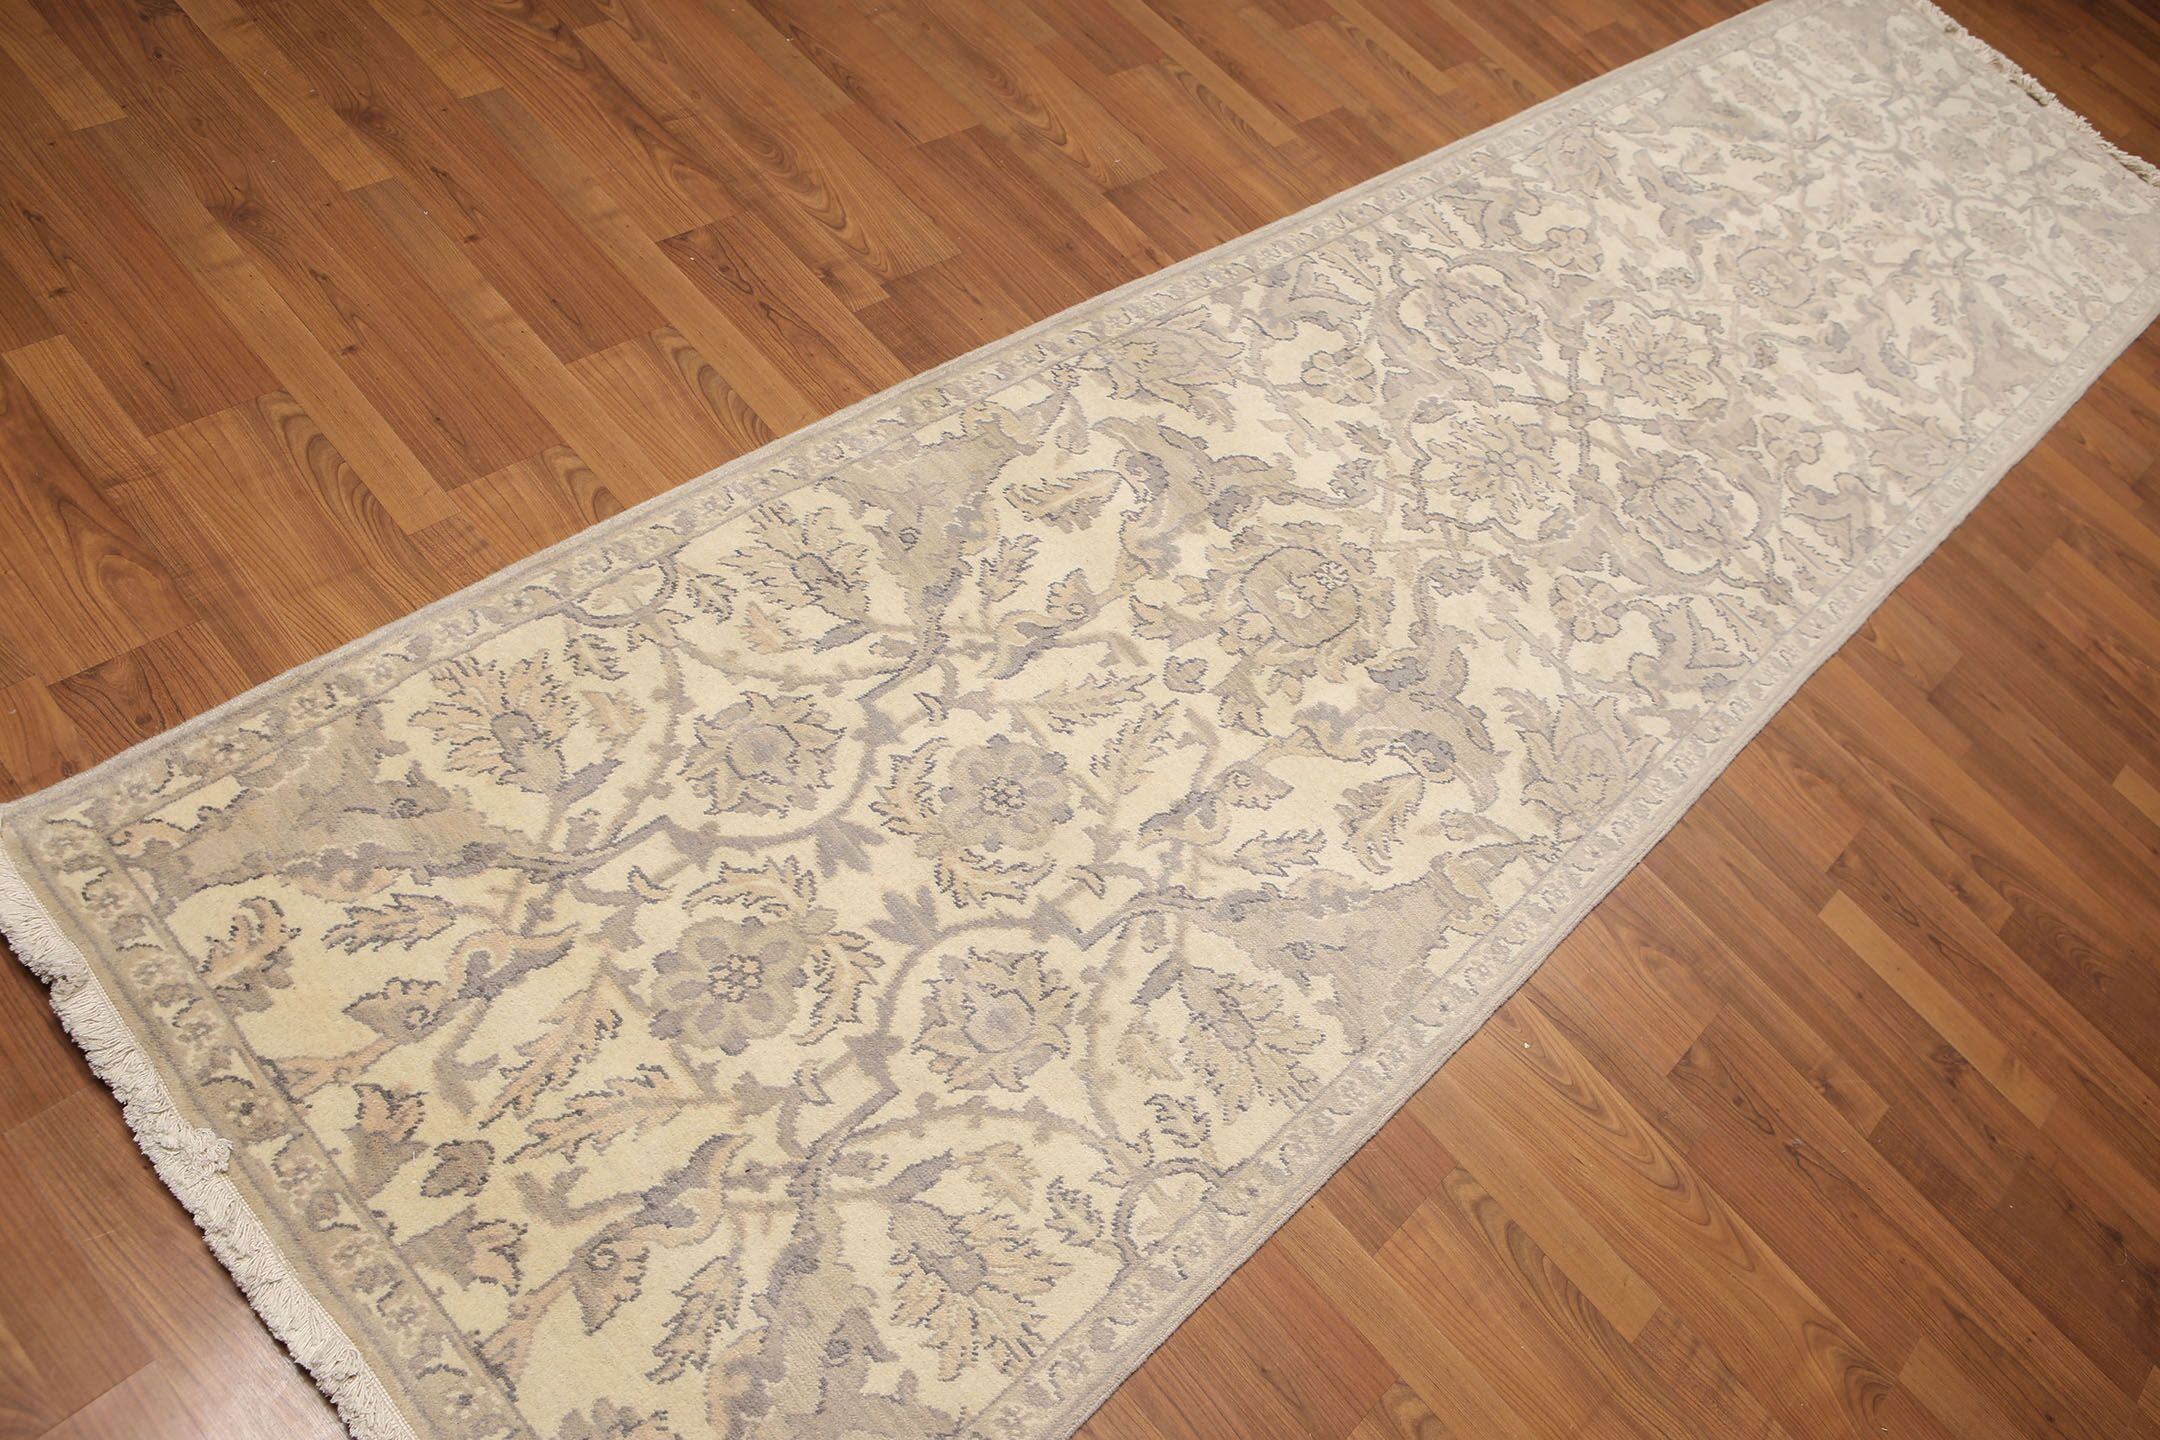 One-of-a-Kind Hepscott Hand-Knotted Wool Gray/Beige Area Rug